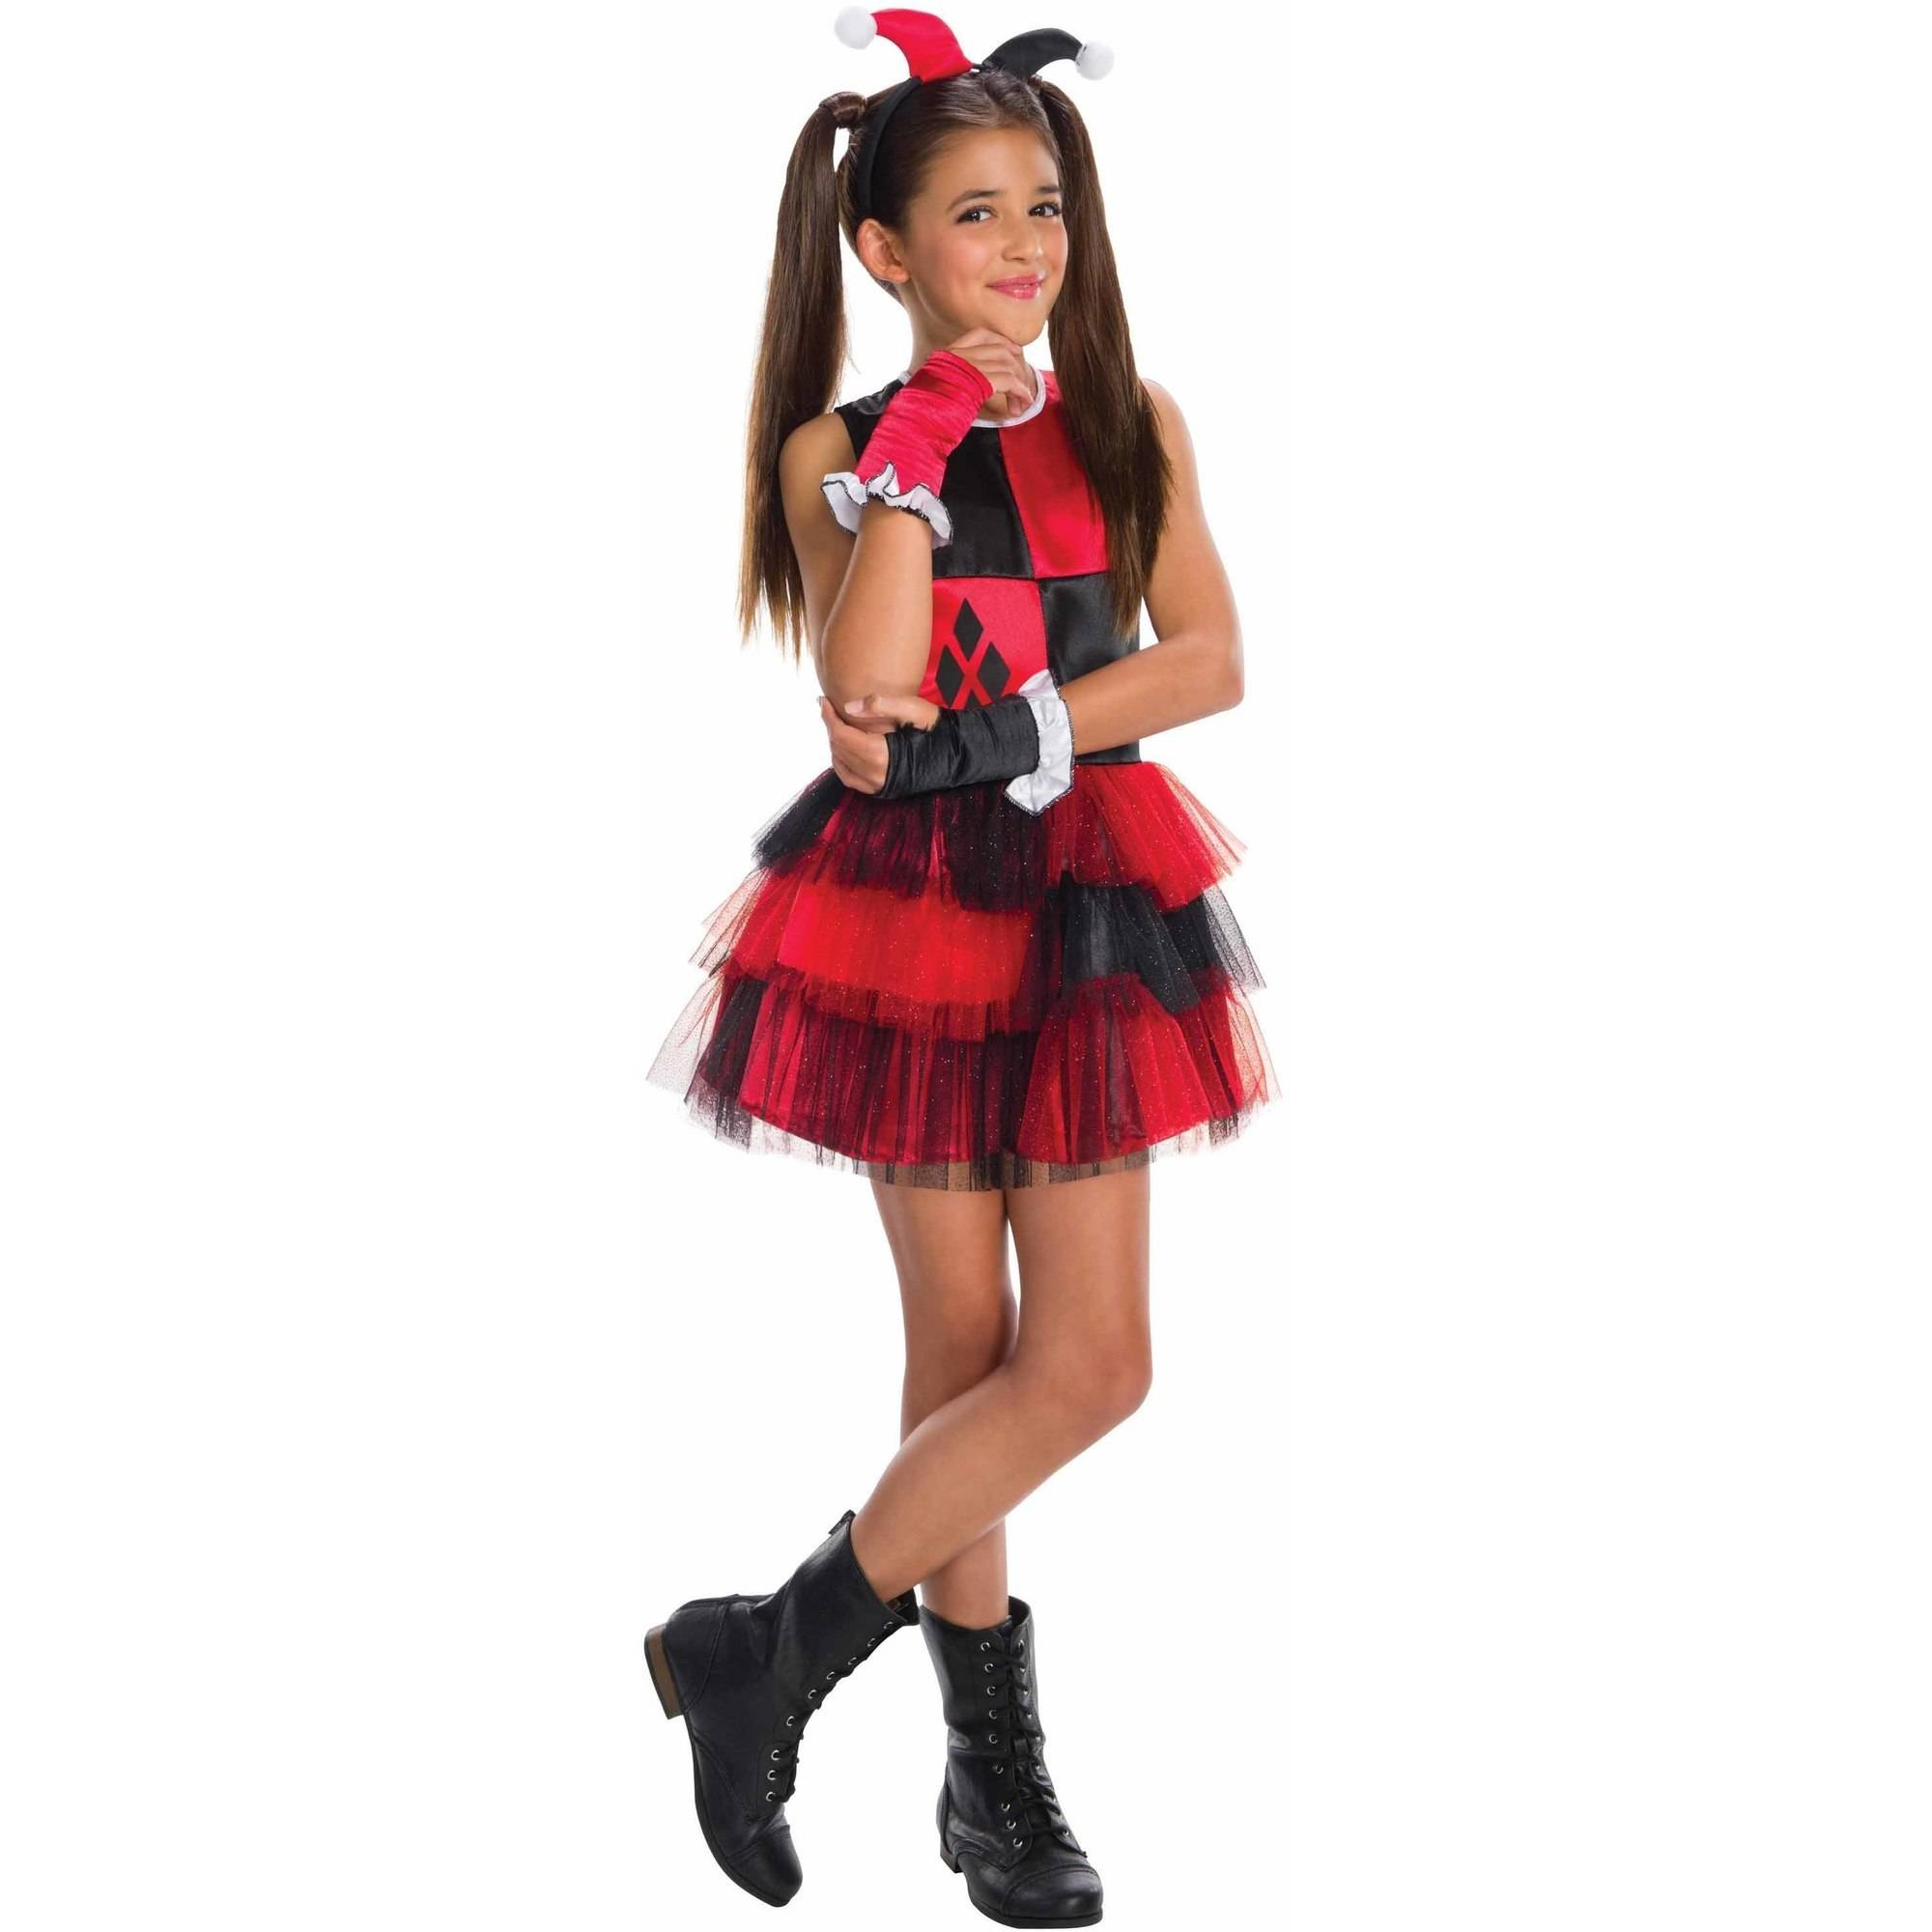 Harley Quinn Child's Costume, Small (4-6) by Rubies Costume Co.